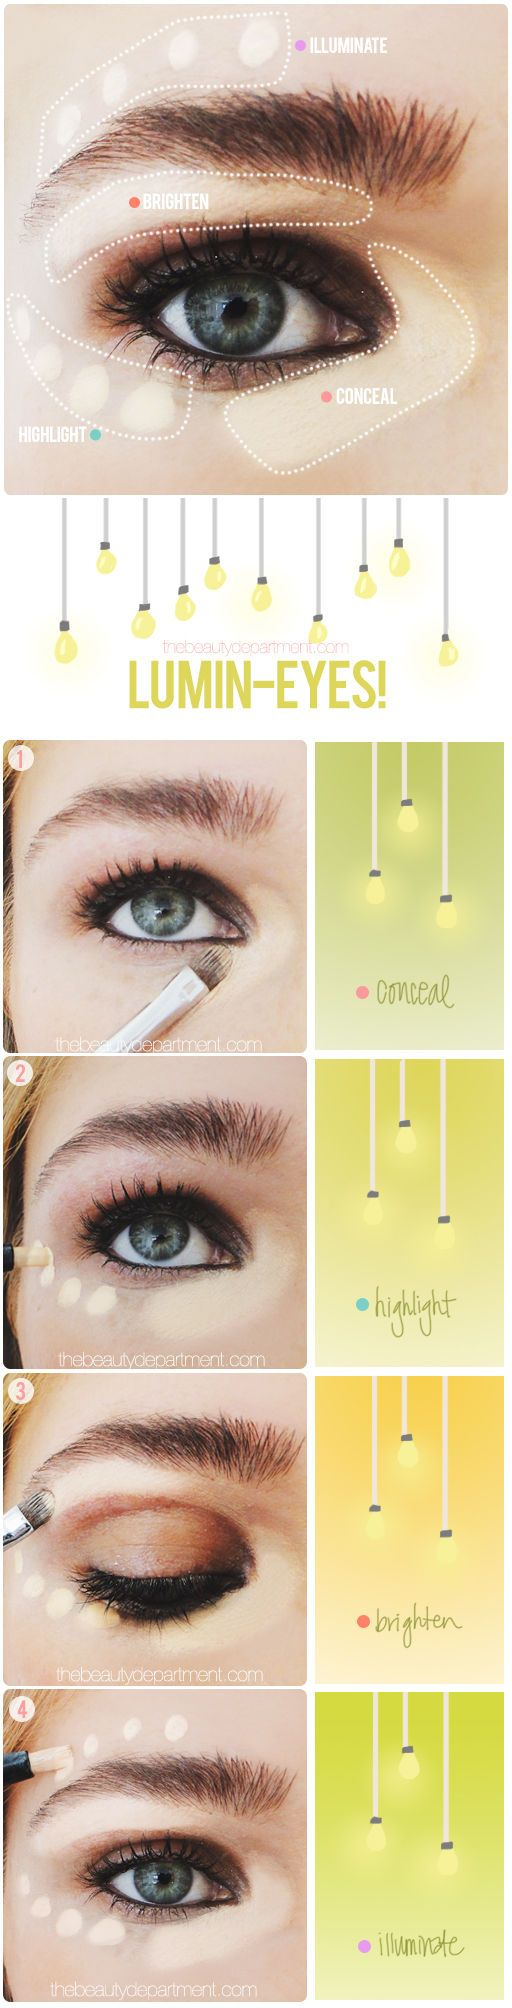 How to brighten up your eyes and make you look more 'awake' in the morning - just what all girls need!